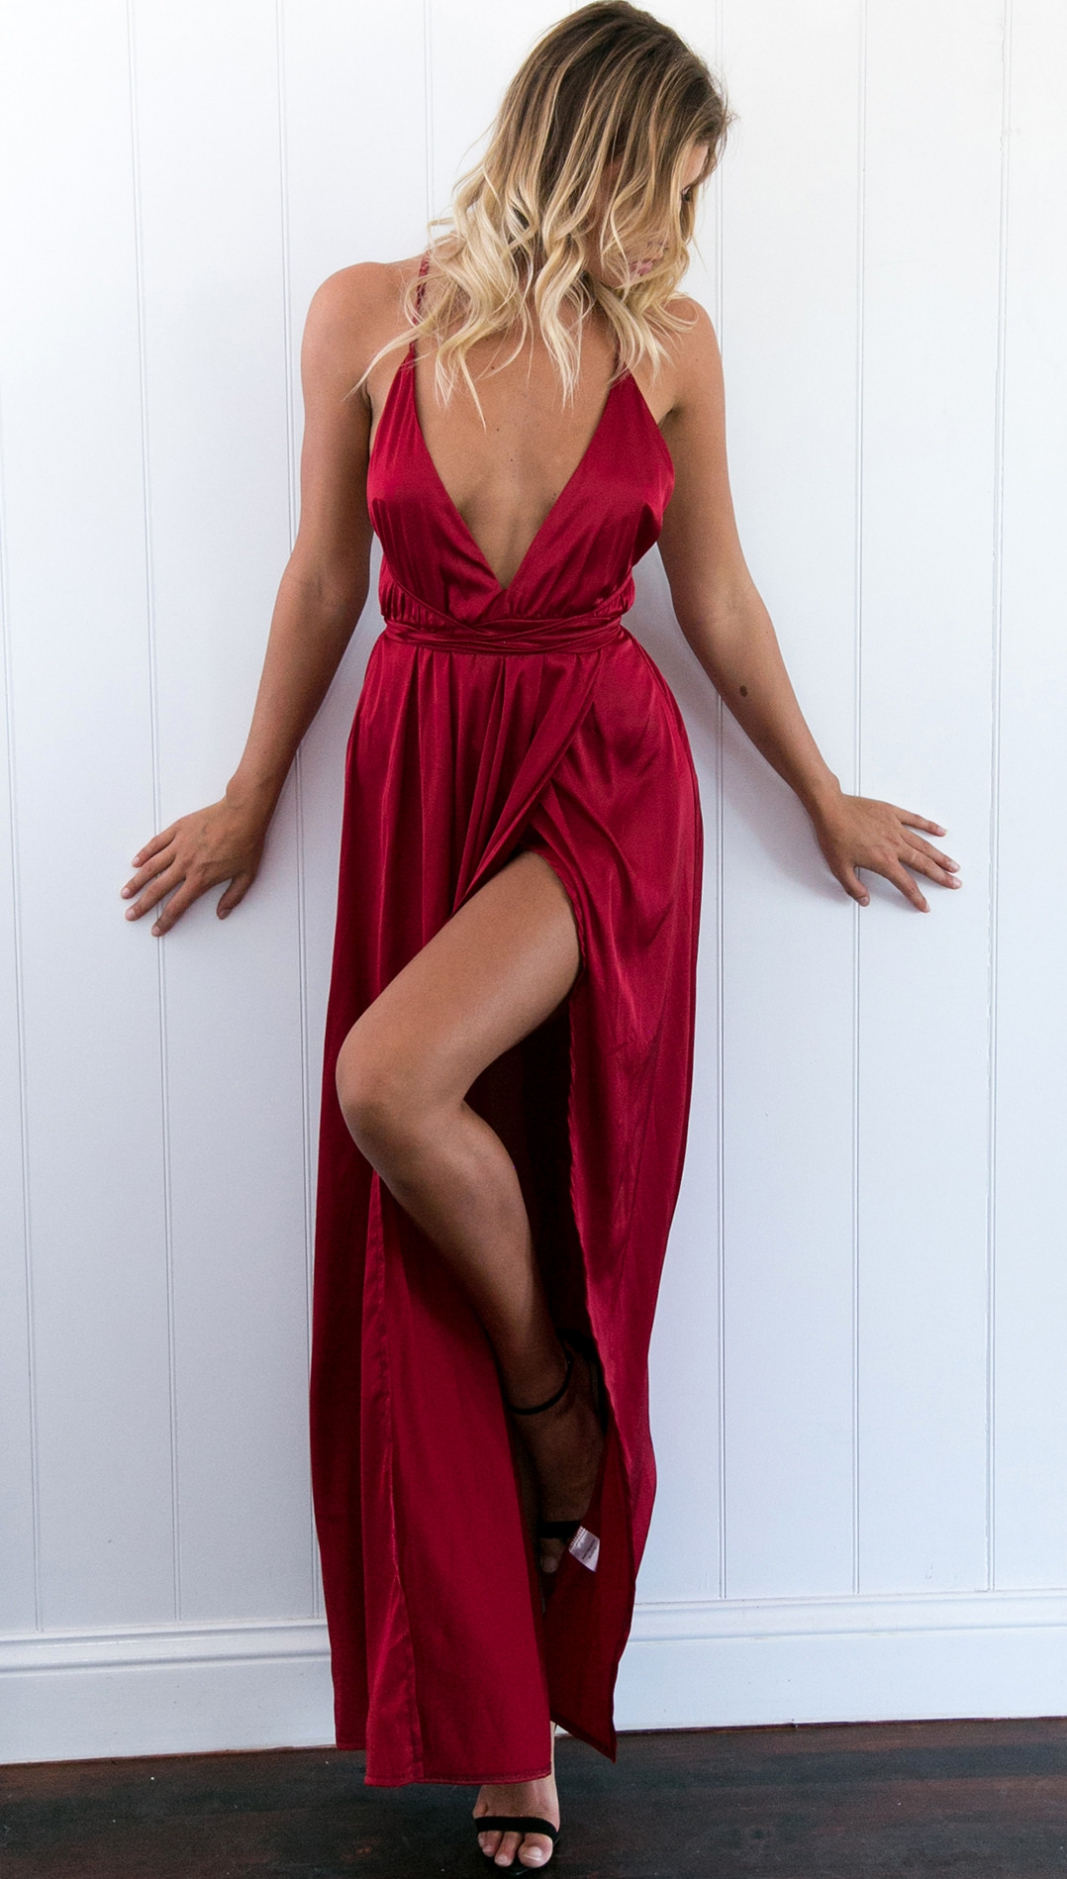 123a38ed72d3f Sexy Red Wine V Neck Prom Dress, Open Back Prom Dress, Sexy Maxi Dress,  Slit Prom Dress, Split Prom Dress, Sexy Formal Dress